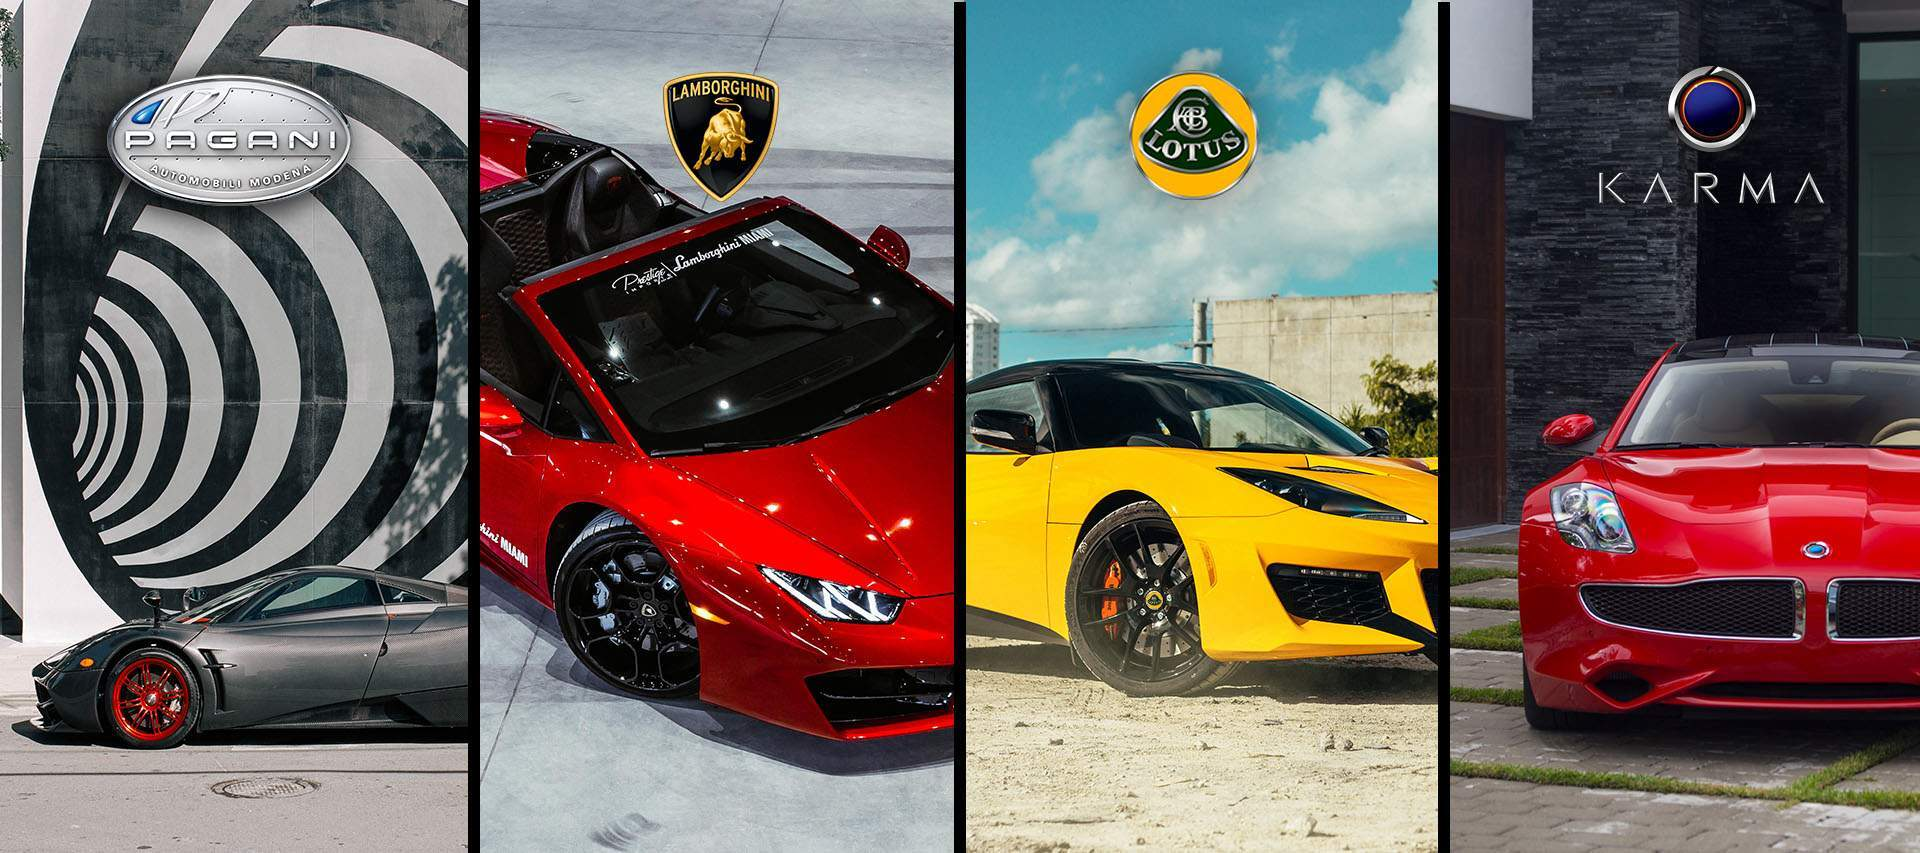 Our story lamborghini miami logo